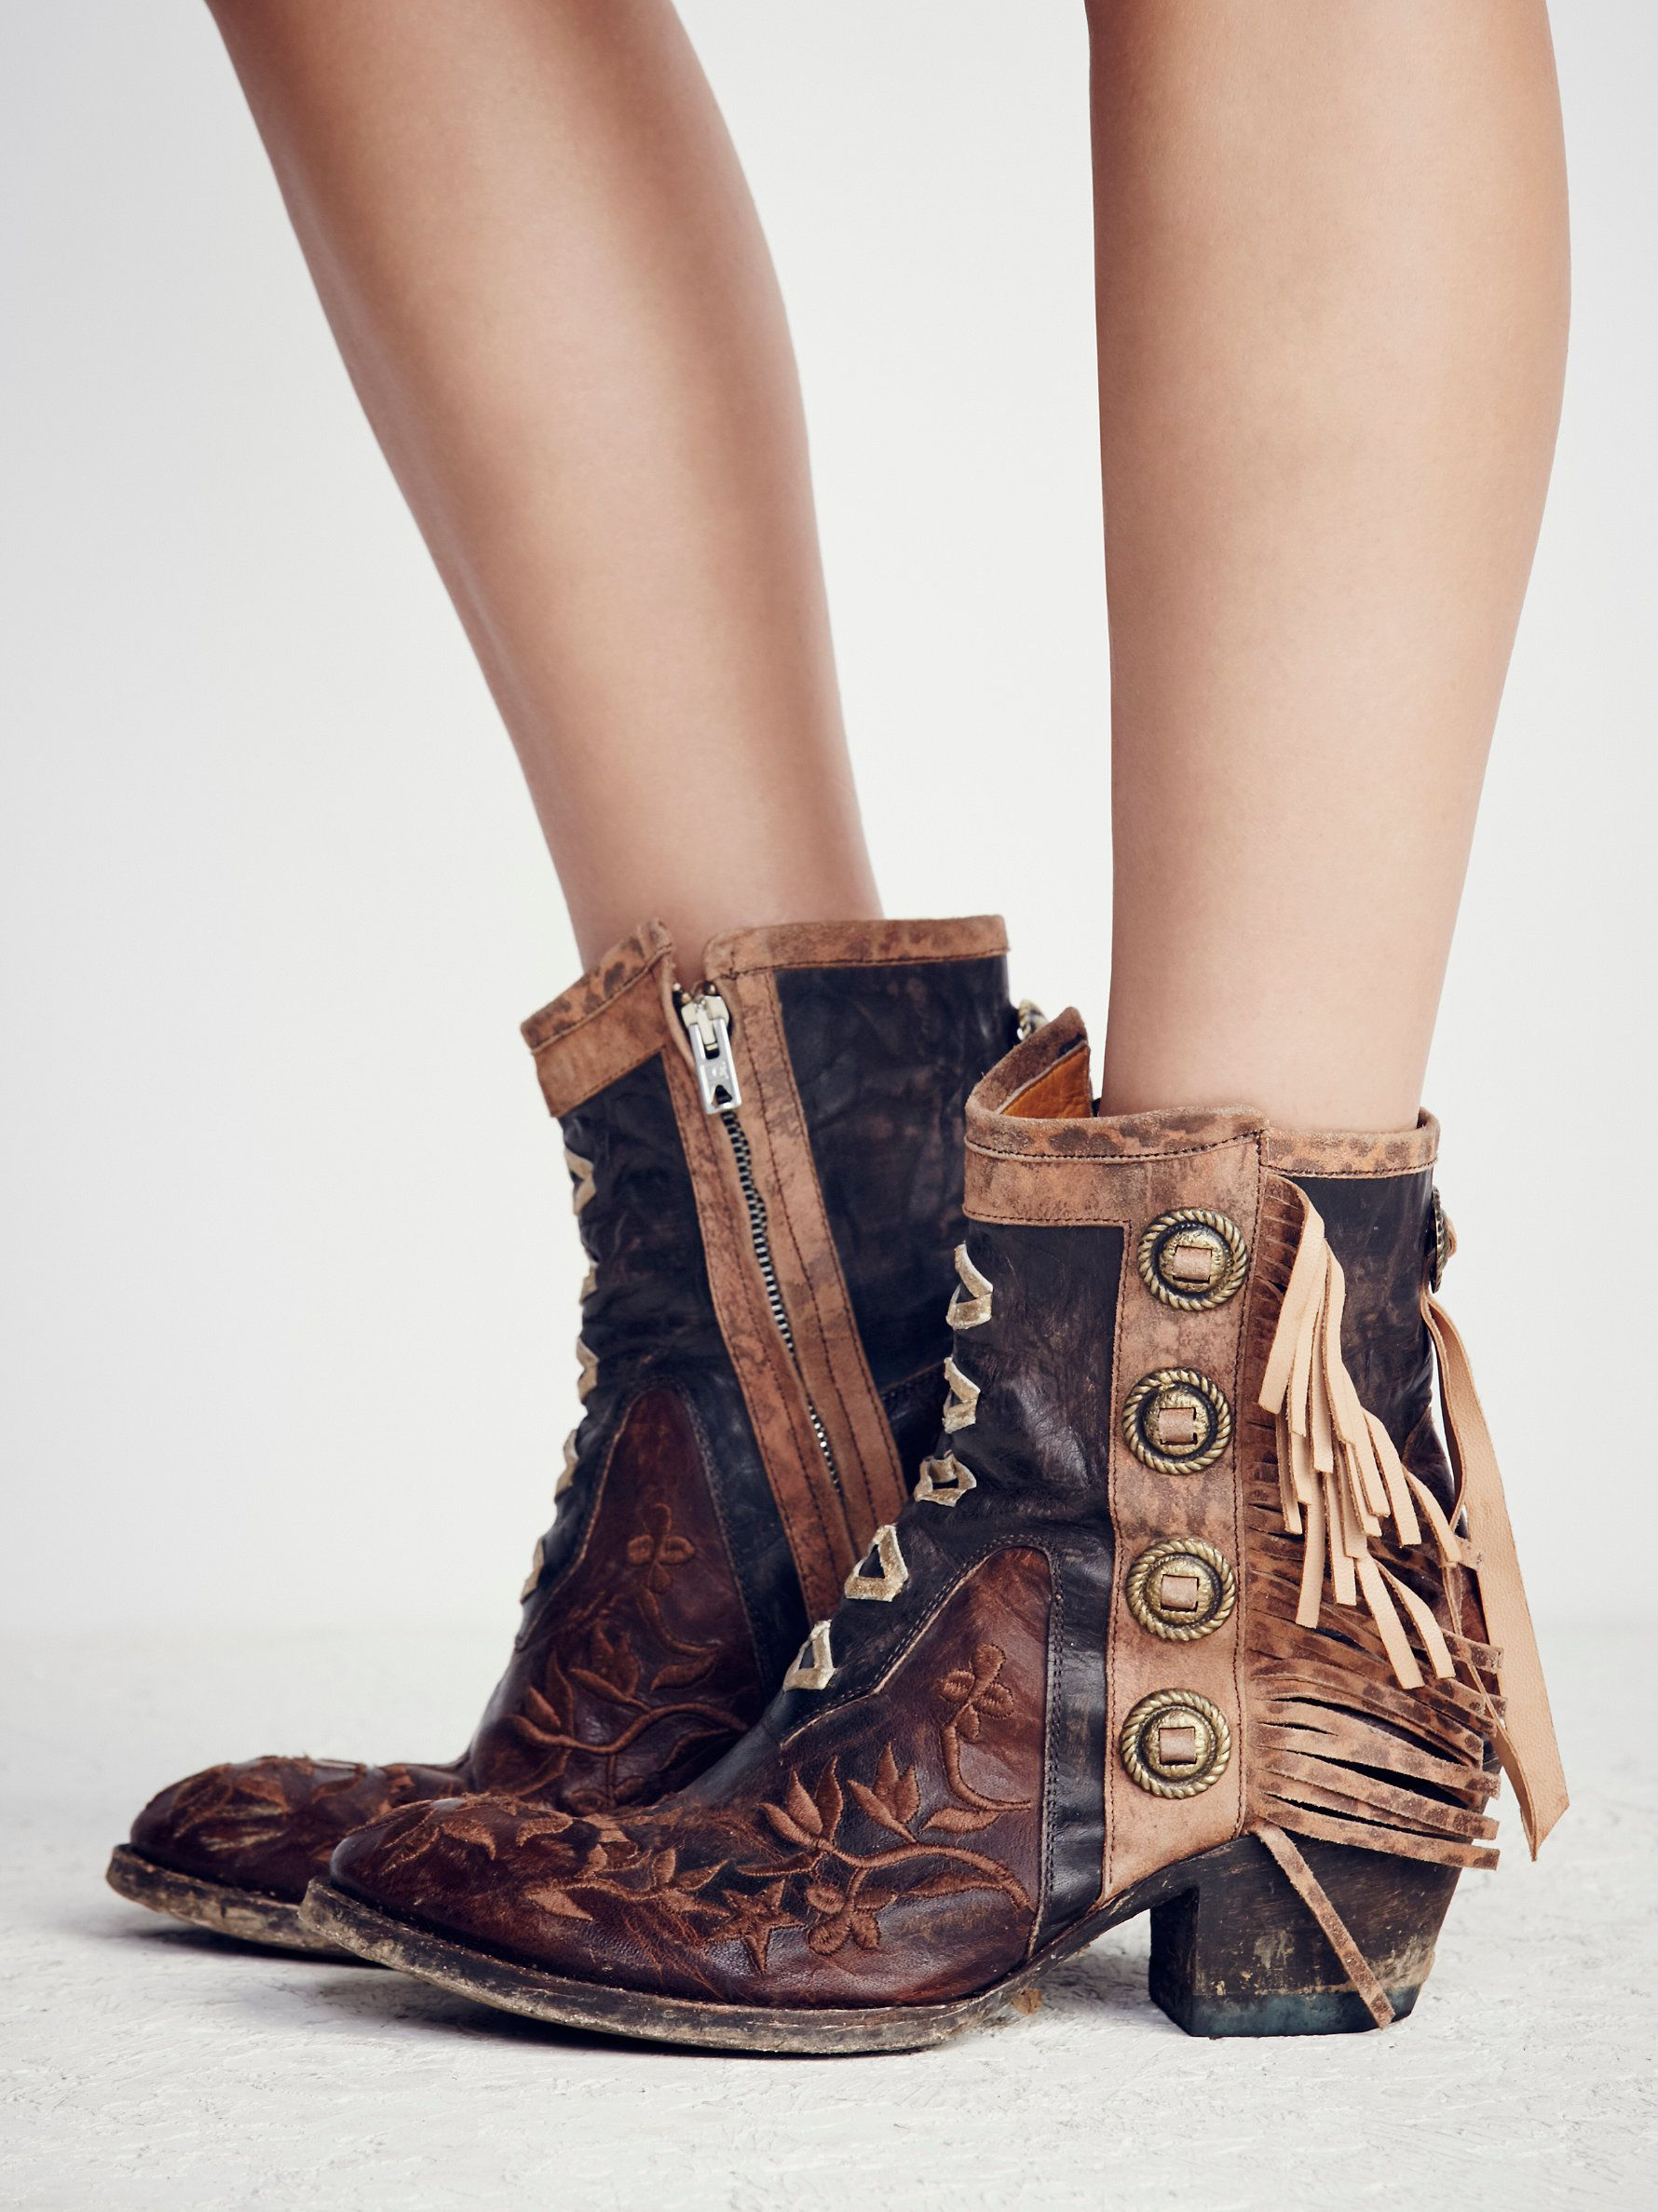 King Ranch Ankle Boot | Western-inspired ankle boots featuring beautiful  embroidery detailing with metal